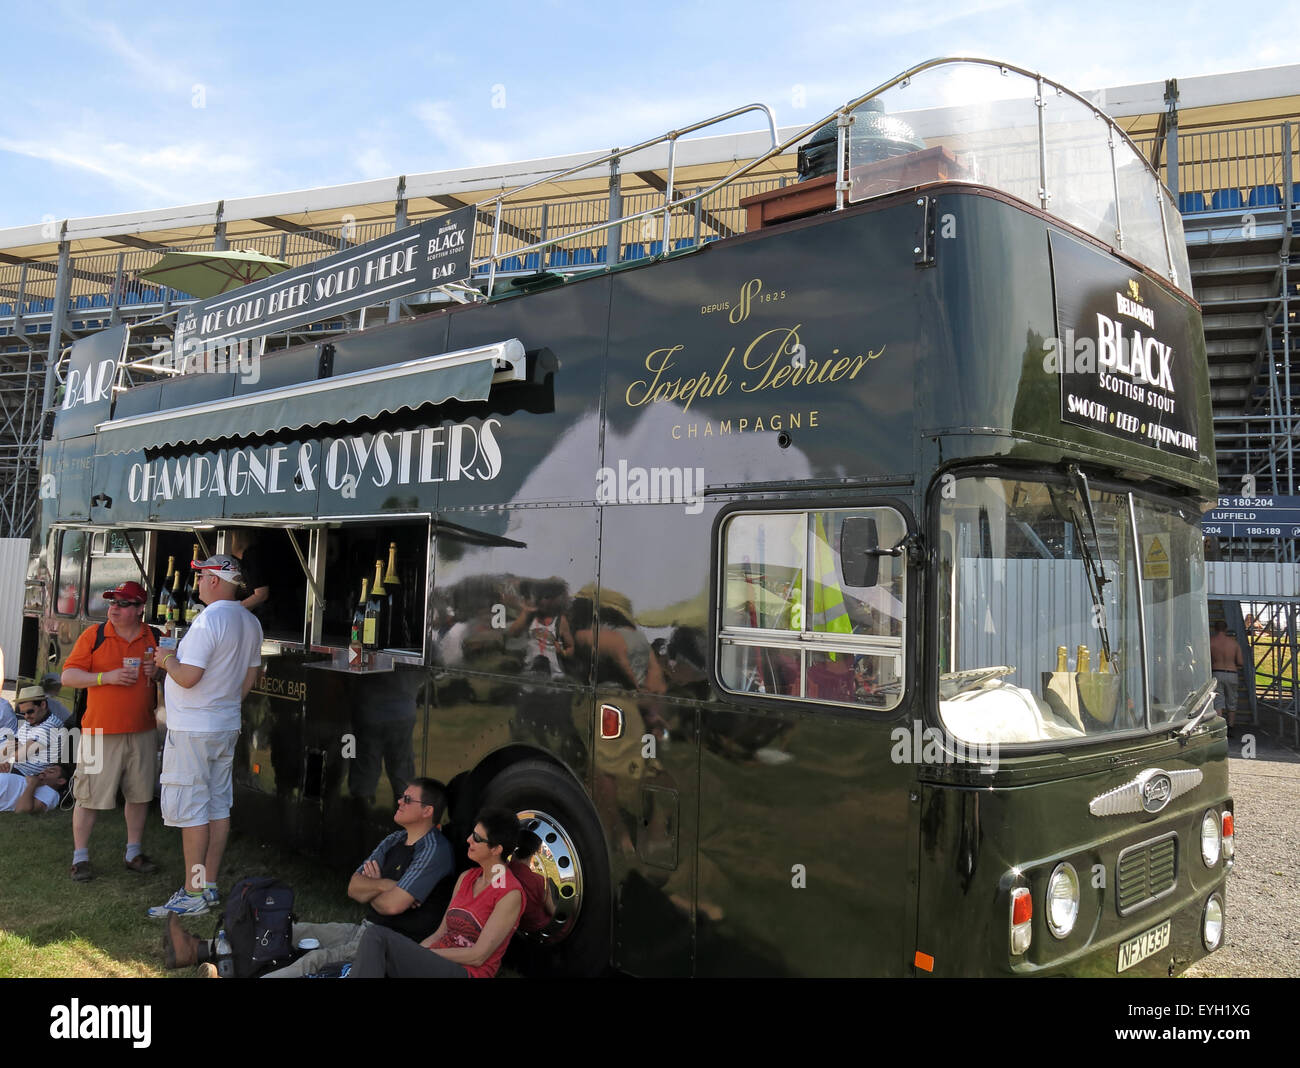 at,an,event,catering,food safety,food,safety,experience,F1,Formula One,Silverstone,Grand Prix,double,decker,London,bus,London bus,outlet,Black,bus,Joseph,Perrier,Champagne,and,Oyster,bar,GoTonySmith,Buy Pictures of,Buy Images Of